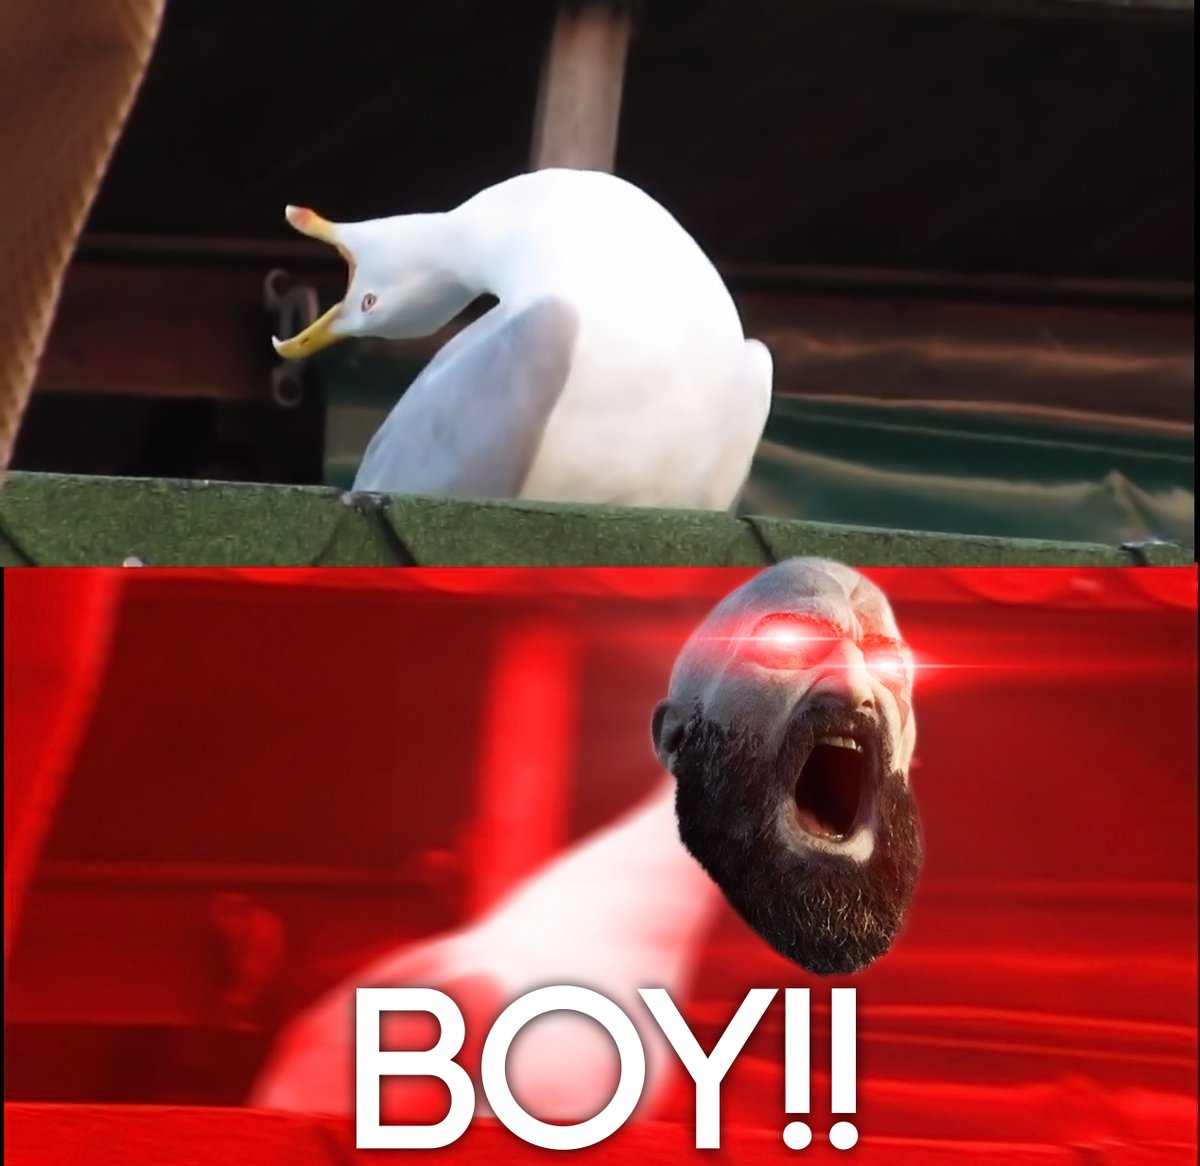 HAVE YOU THOUGHT OF a NAME YET? BoY? THATS a RIDICULOUS ... |Kratos Npc Meme